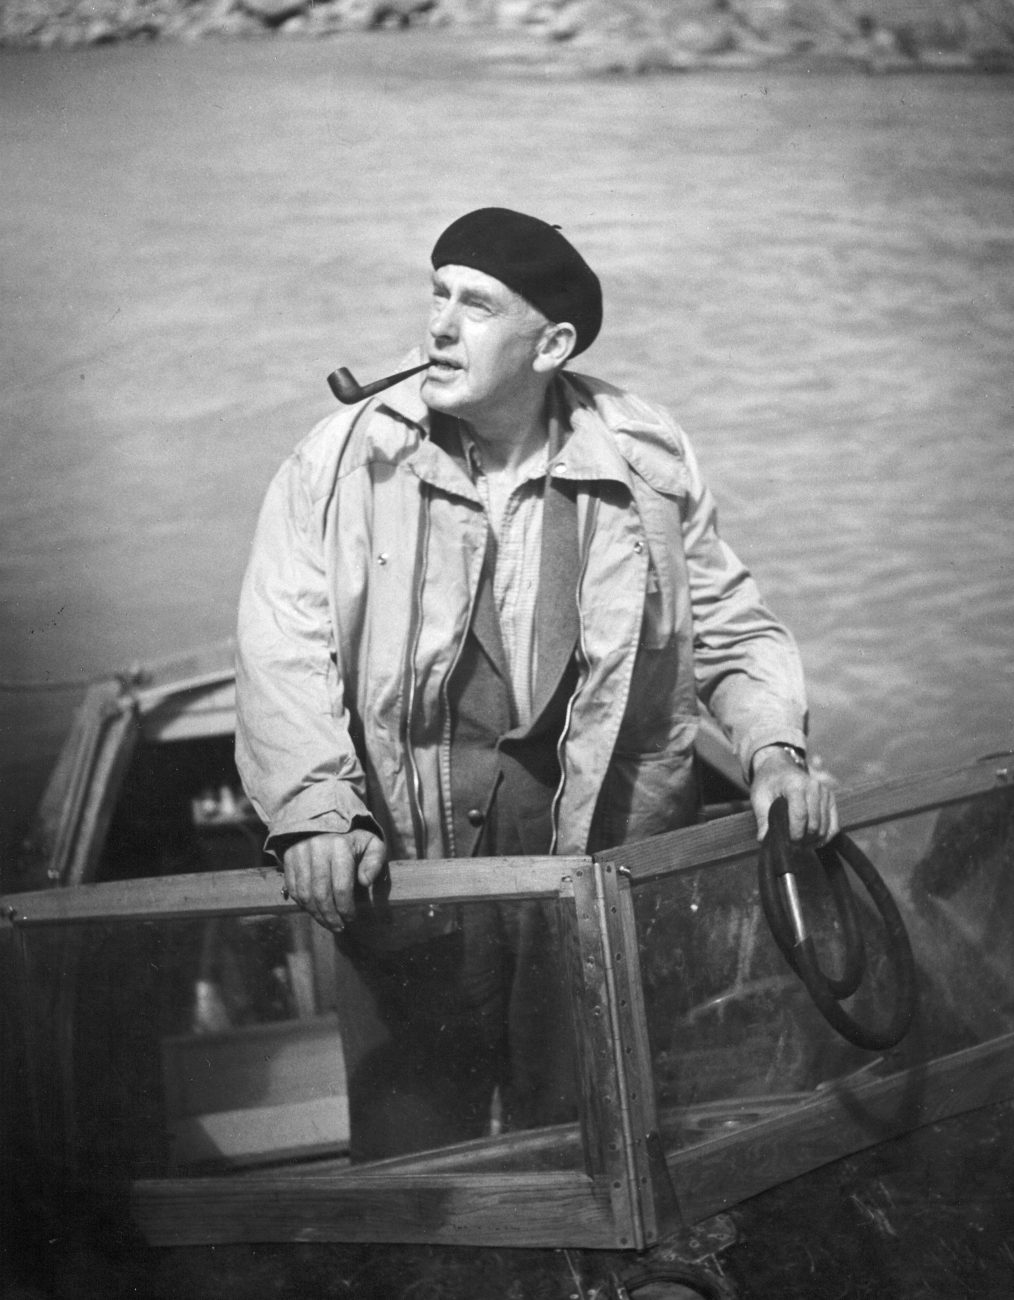 Among jet-boat enthusiasts and backyard tinkerers Hamilton remains an almost-mythical figure, a homegrown engineer who went against the flow of both the river and of what was thought to be possible.